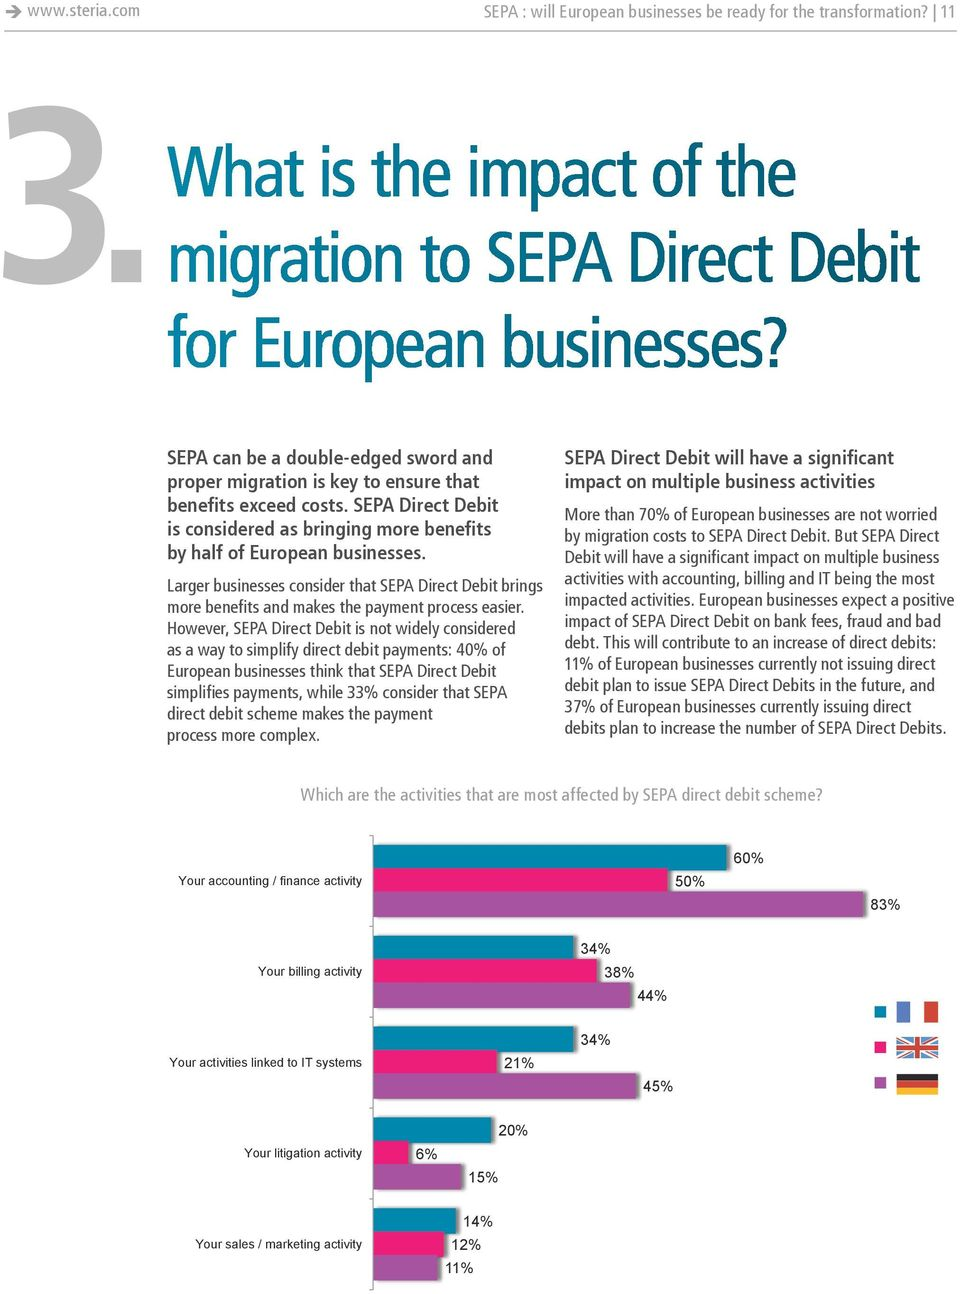 SEPA Direct Debit is considered as bringing more benefits by half of European businesses. Larger businesses consider that SEPA Direct Debit brings more benefits and makes the payment process easier.